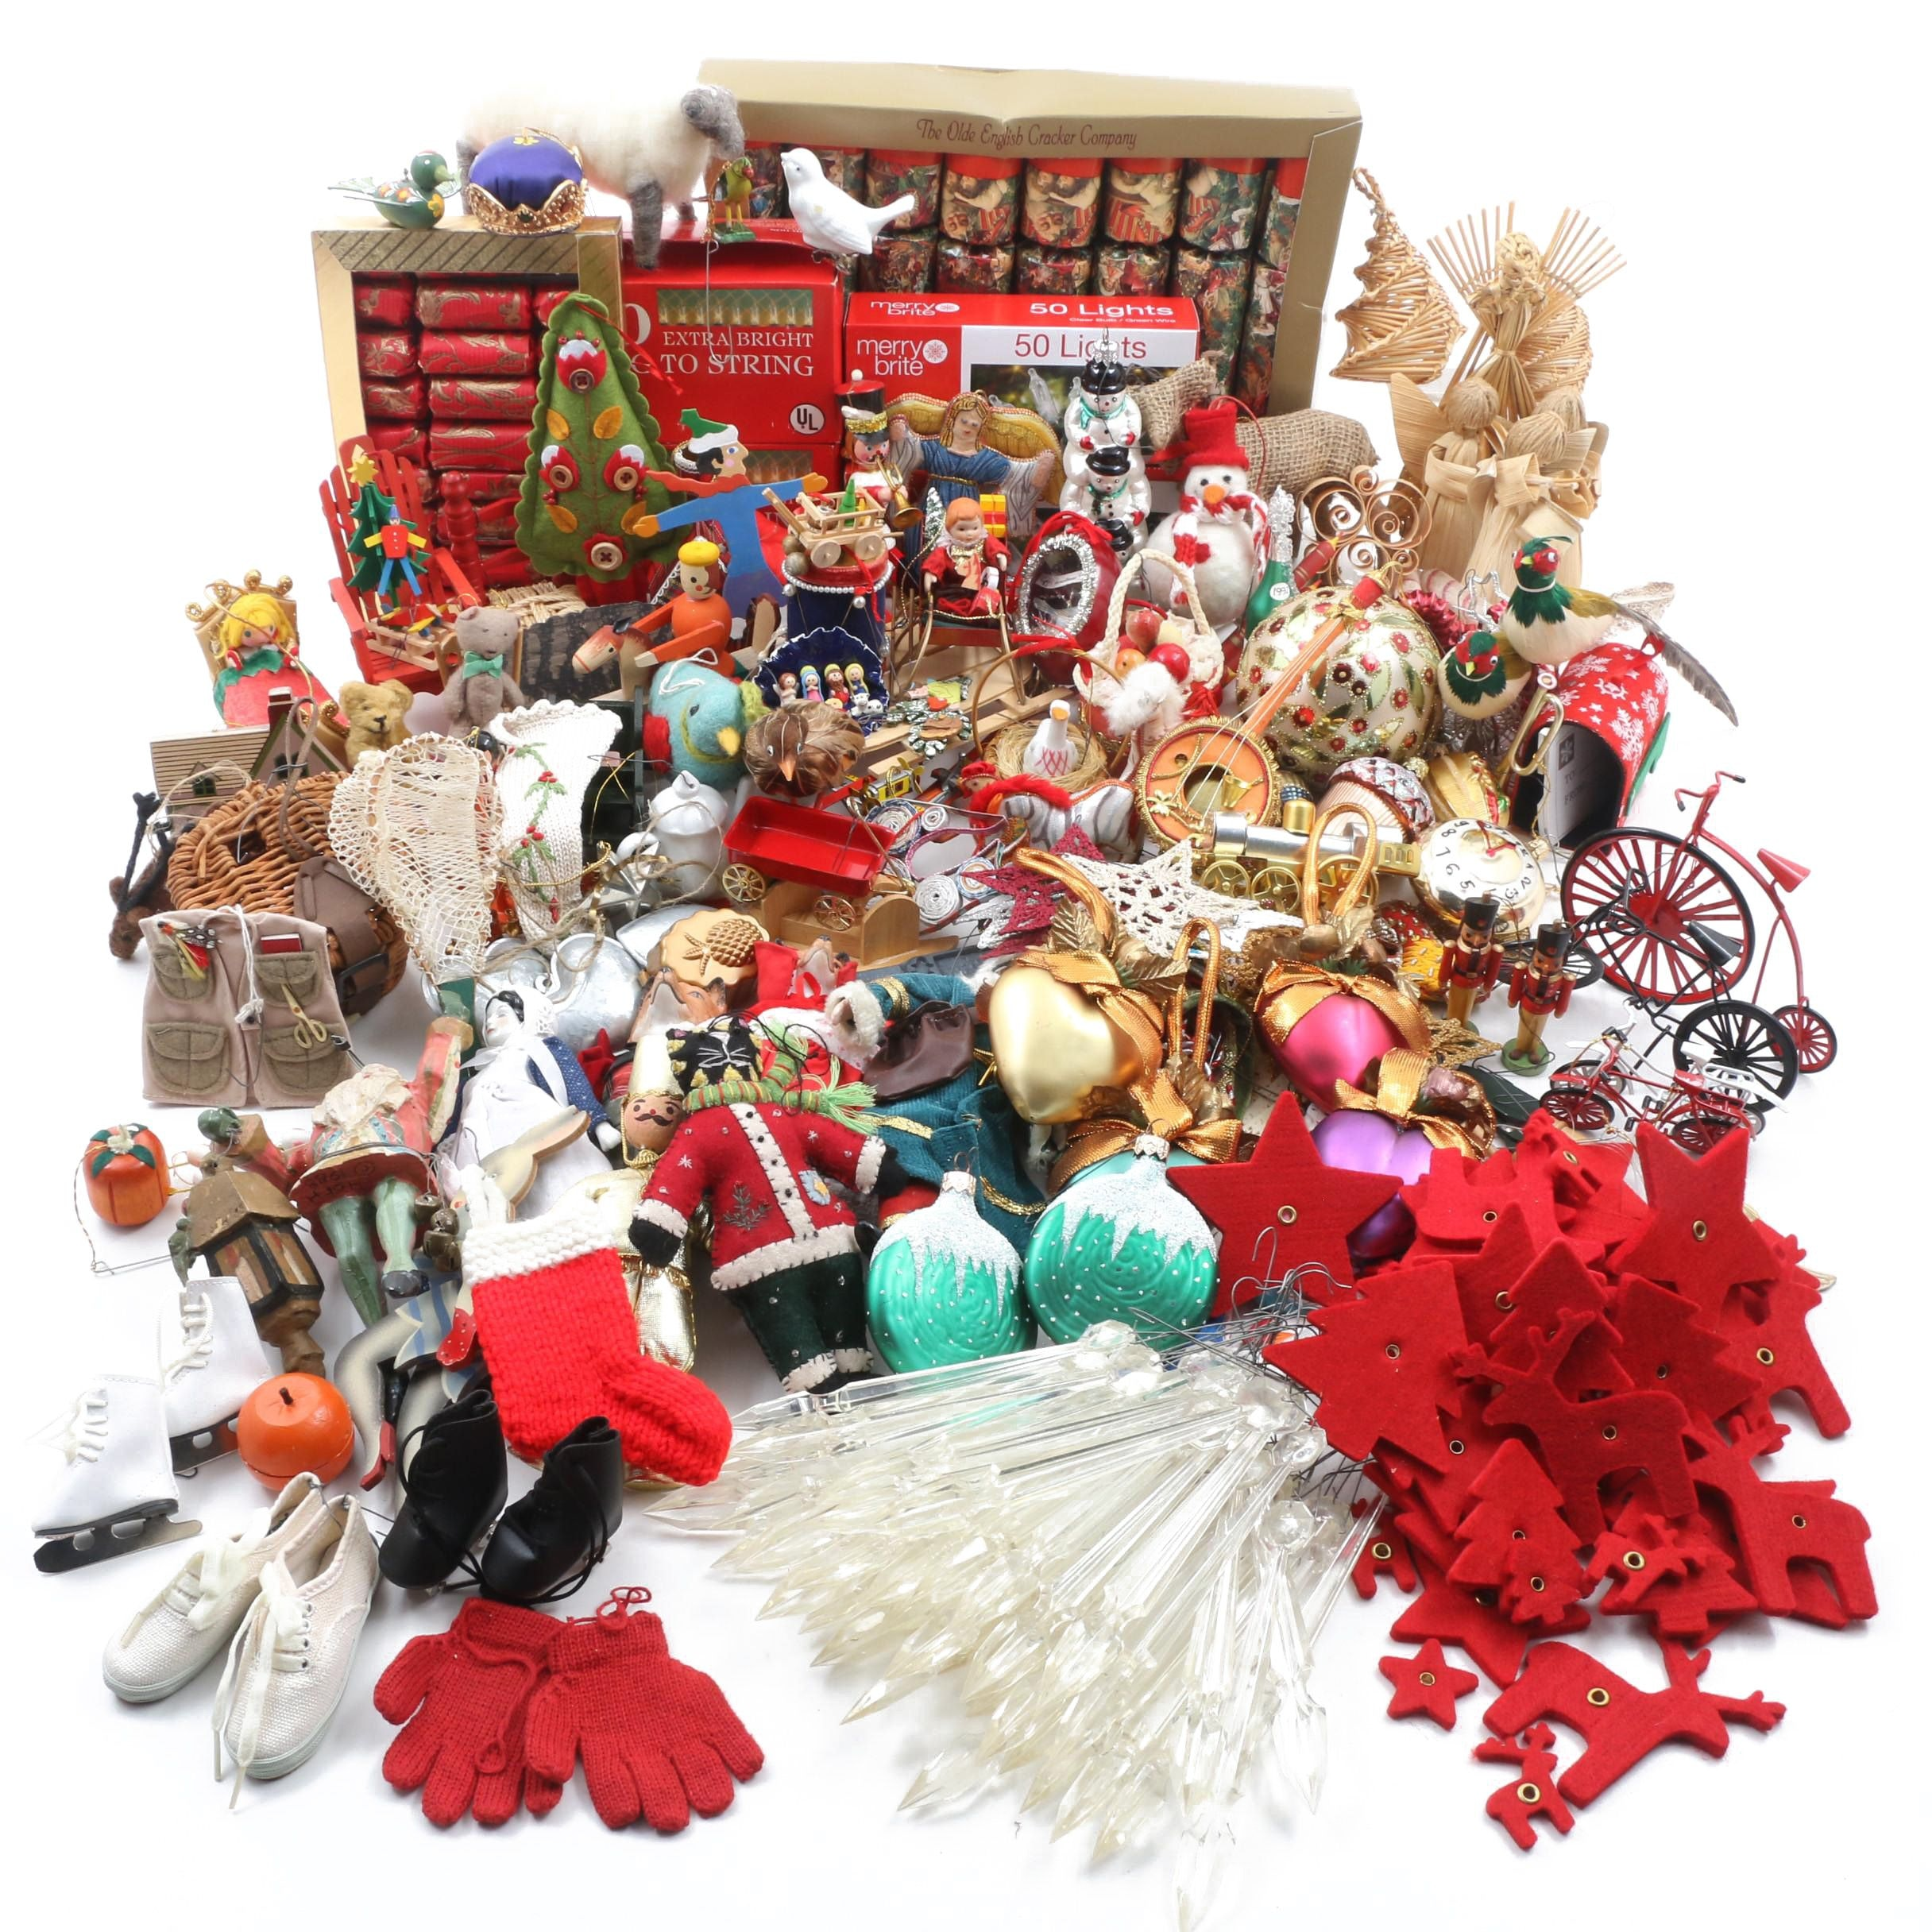 Large Assortment of Christmas Themed Ornaments and Decorations